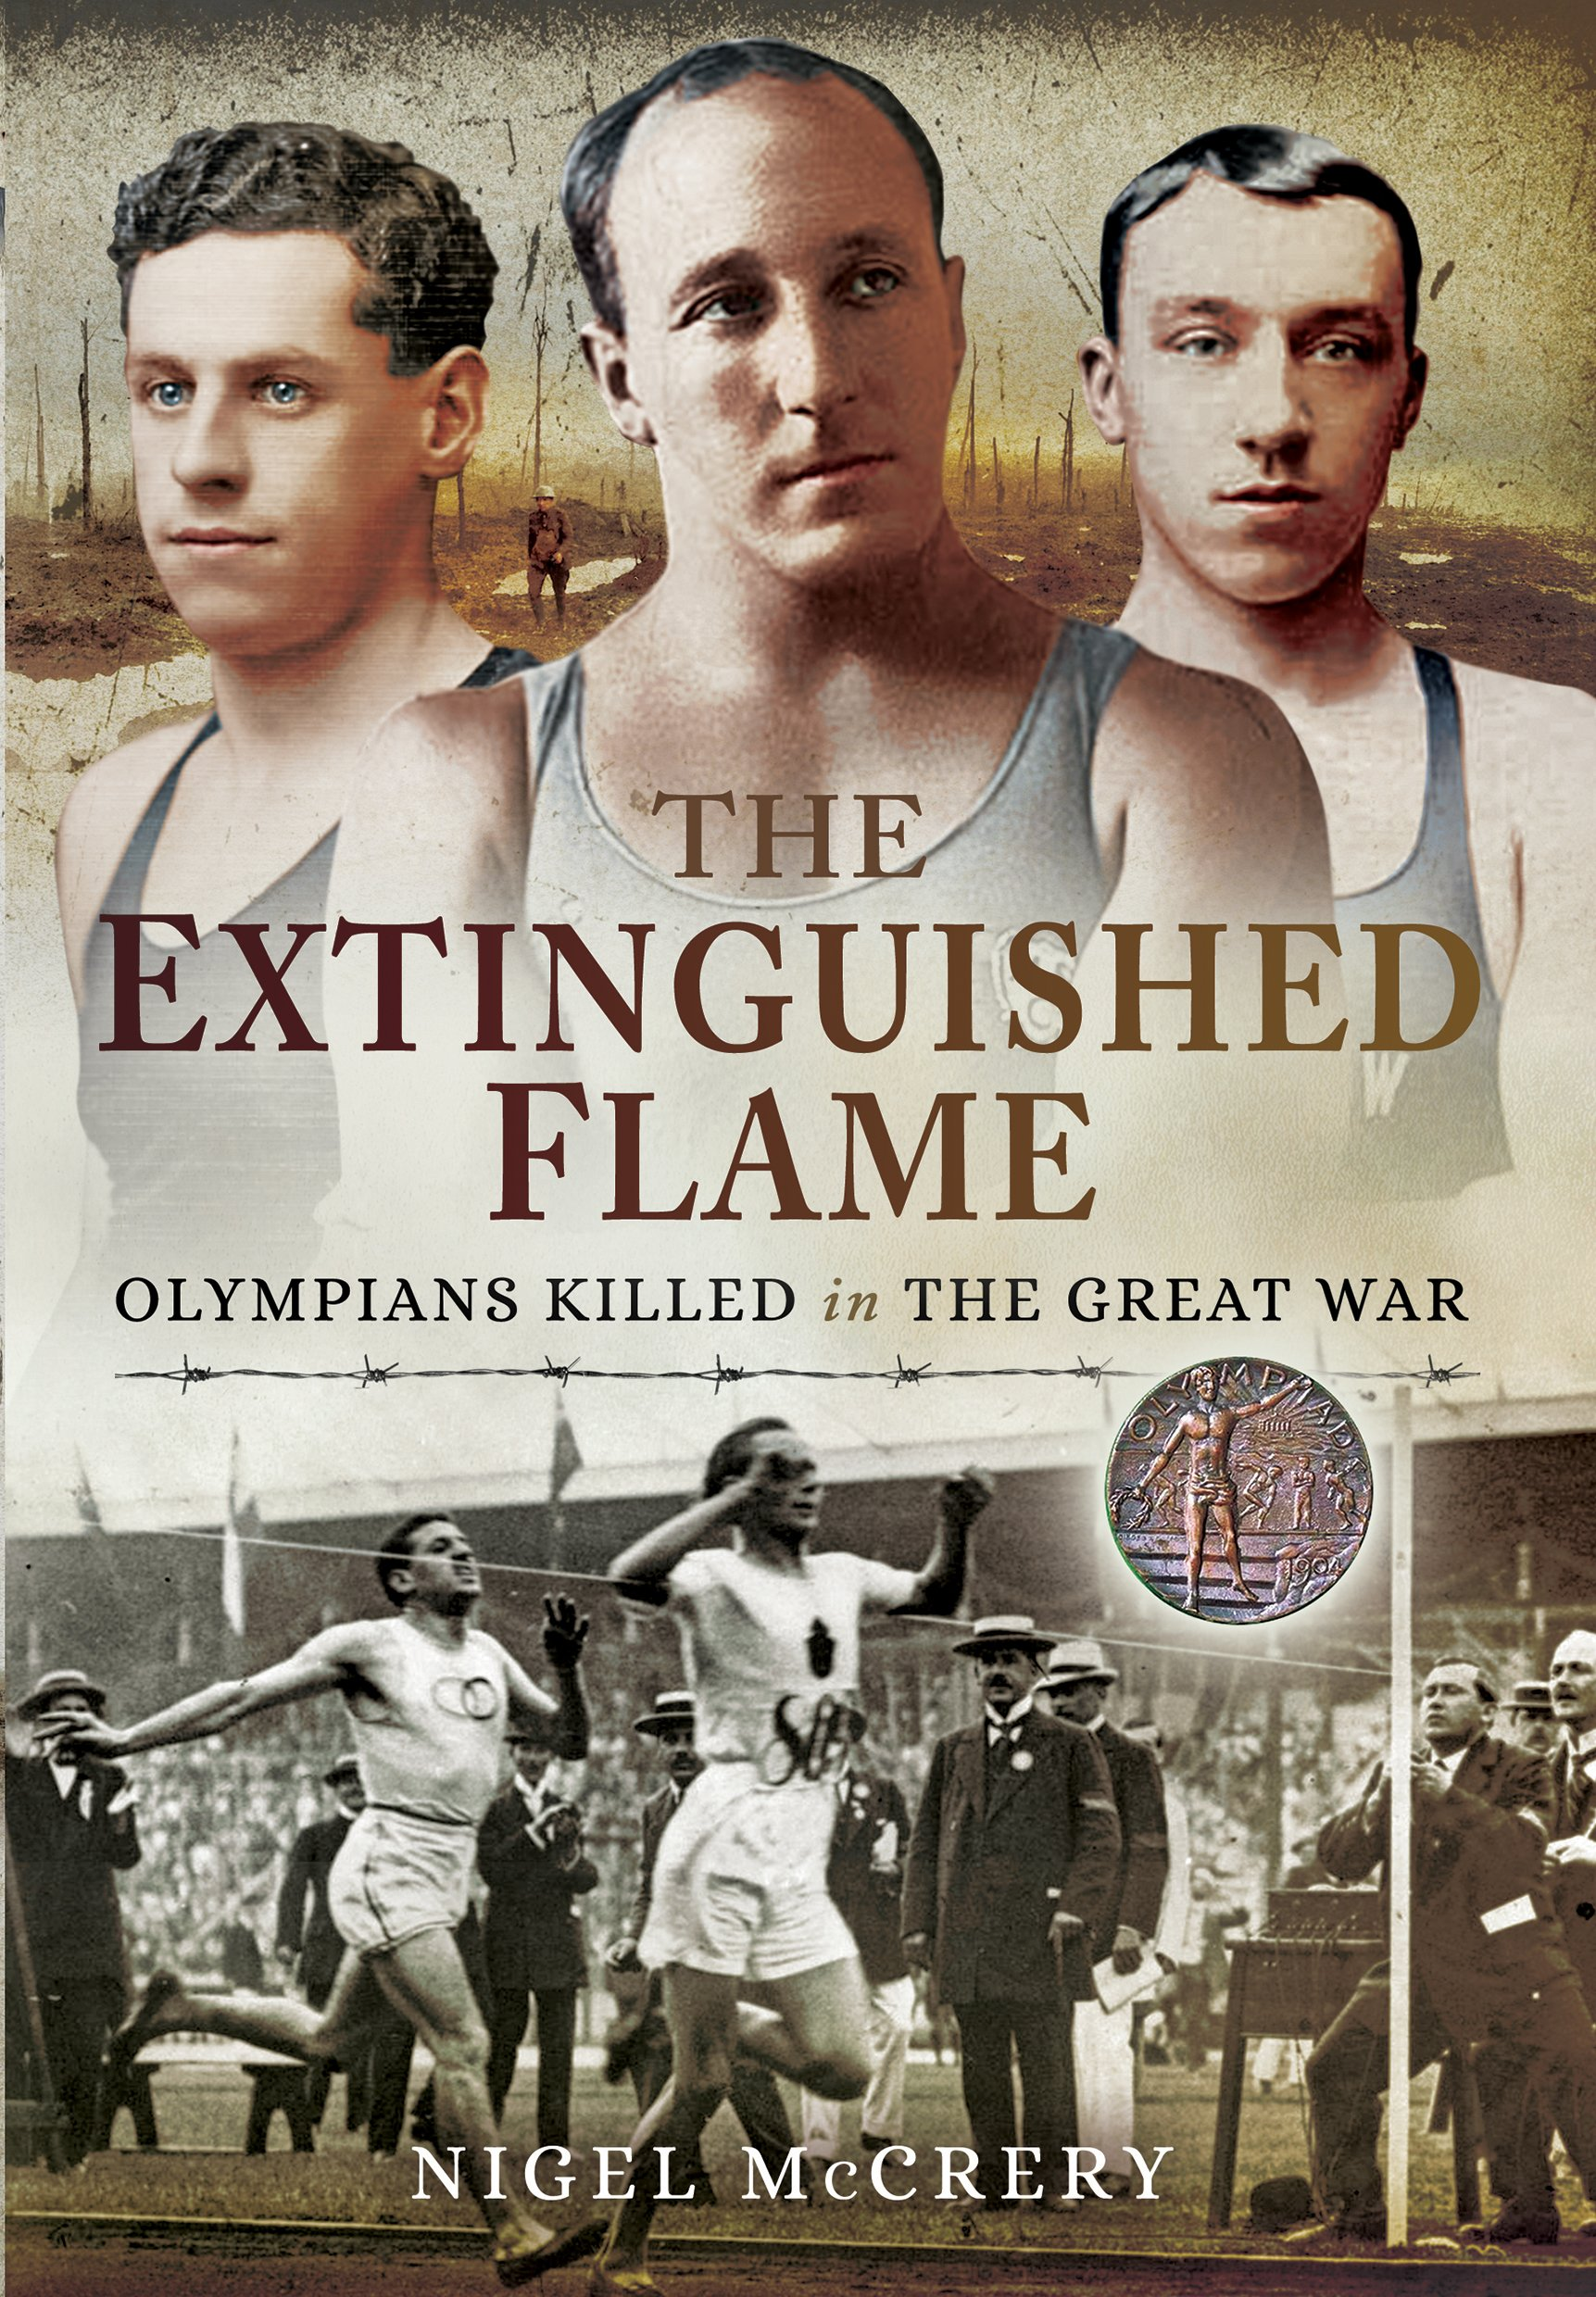 The Extinguished Flame: Olympians Killed in The Great War PDF